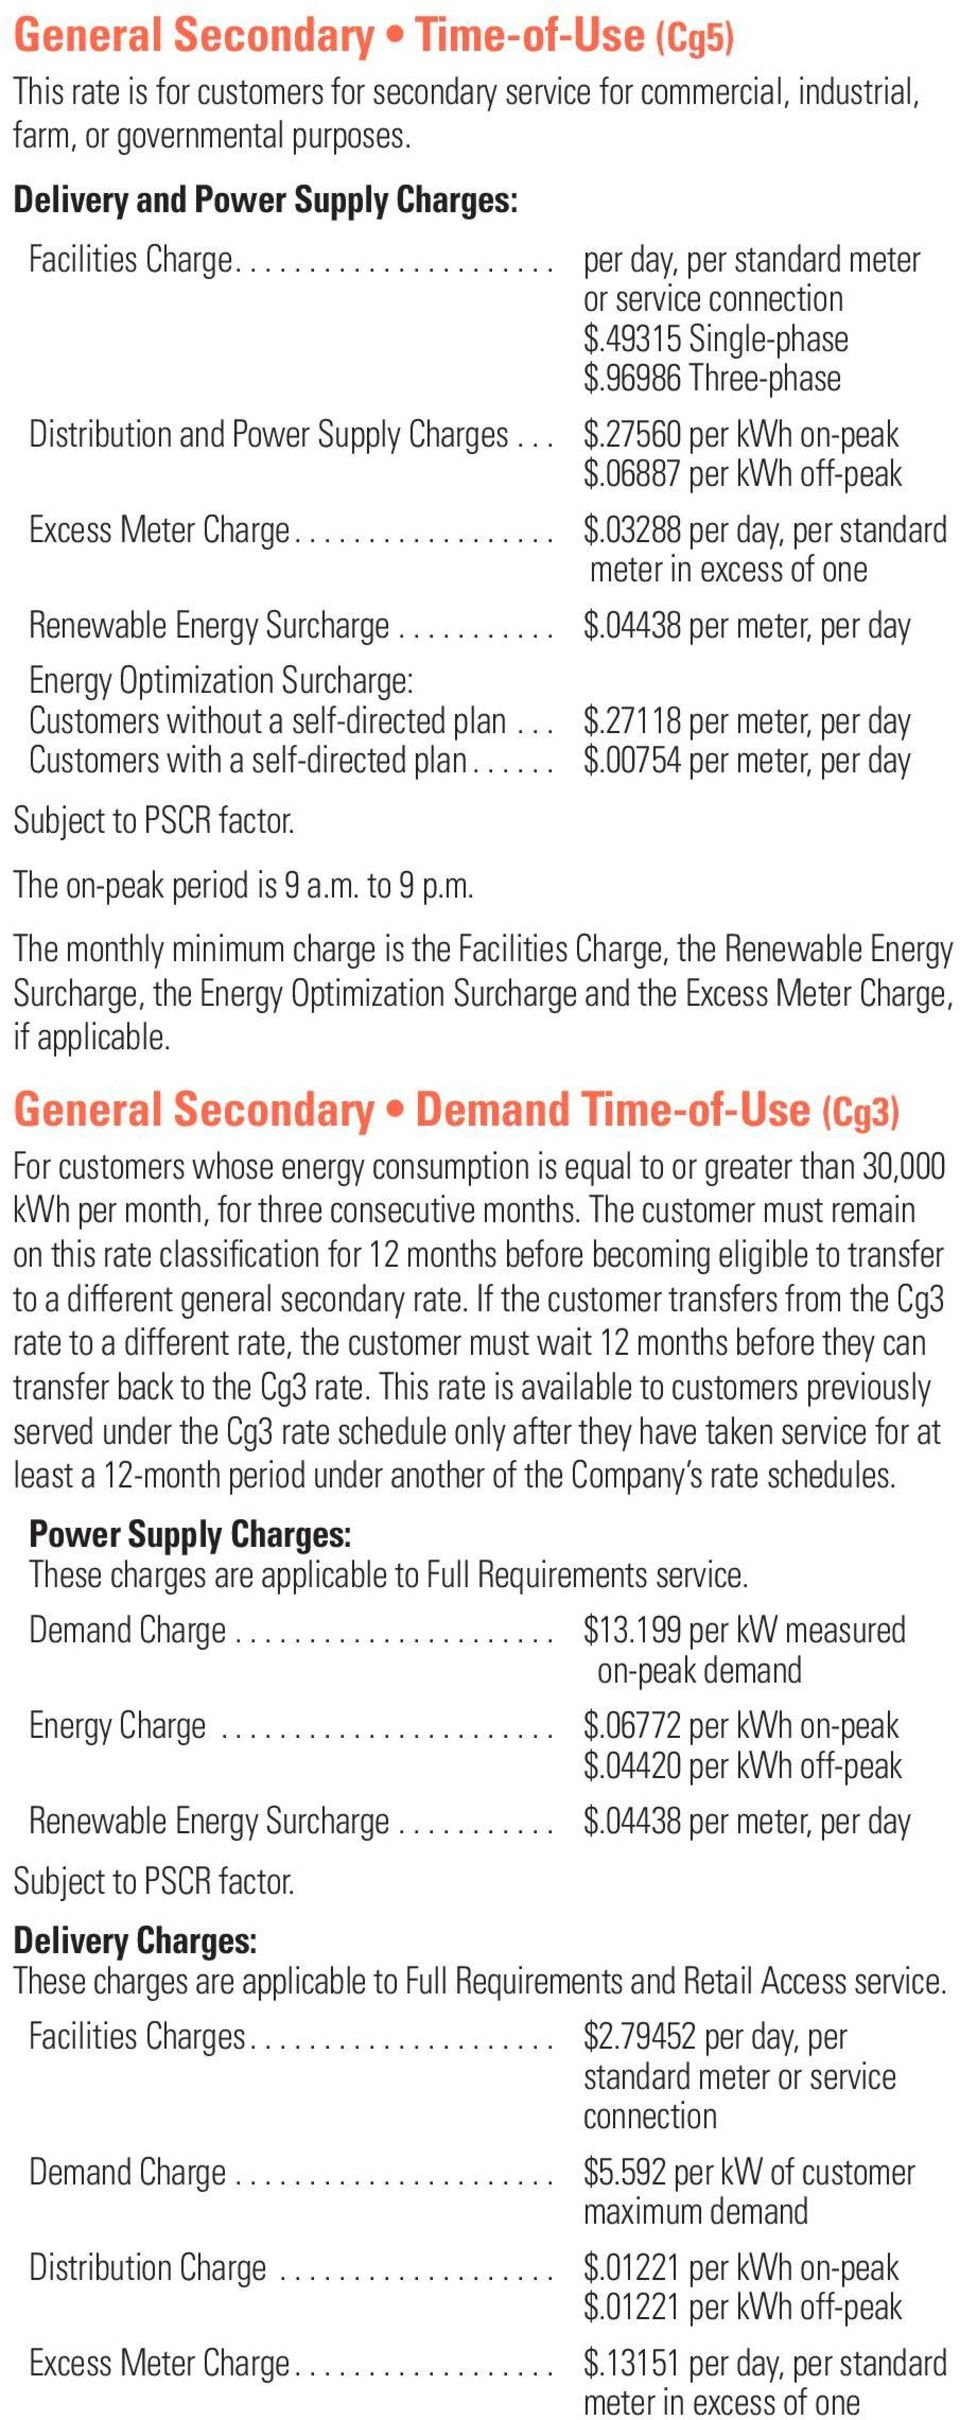 06887 per kwh off-peak Excess Meter Charge... $.03288 per day, per standard meter in excess of one Renewable Energy Surcharge... $.04438 per meter, per day Customers without a self-directed plan... $.27118 per meter, per day Customers with a self-directed plan.